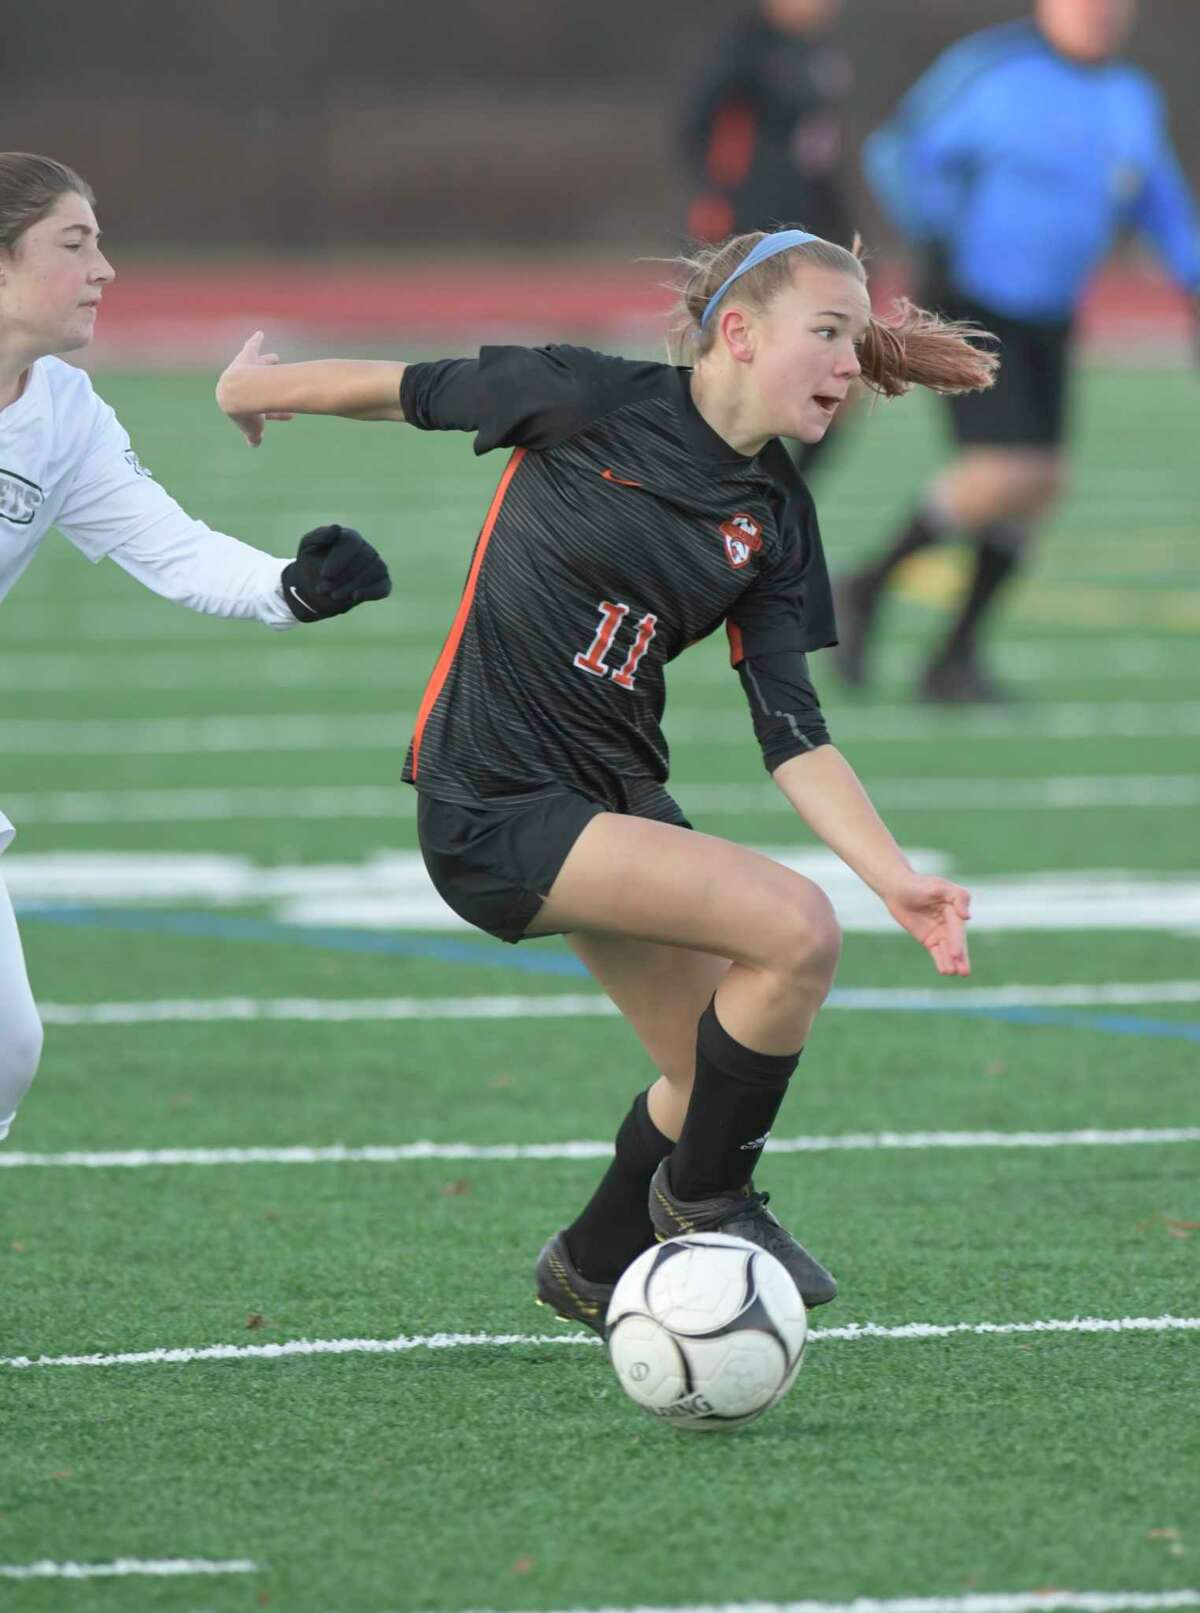 Bethlehem's Claire Hutton (11) moves the ball against Fayetteville-Manlius during a girls' Class AA State quarterfinal high school soccer game Saturday, November 9, 2019, in Mechanicville, N.Y. (Hans Pennink / Special to the Times Union)